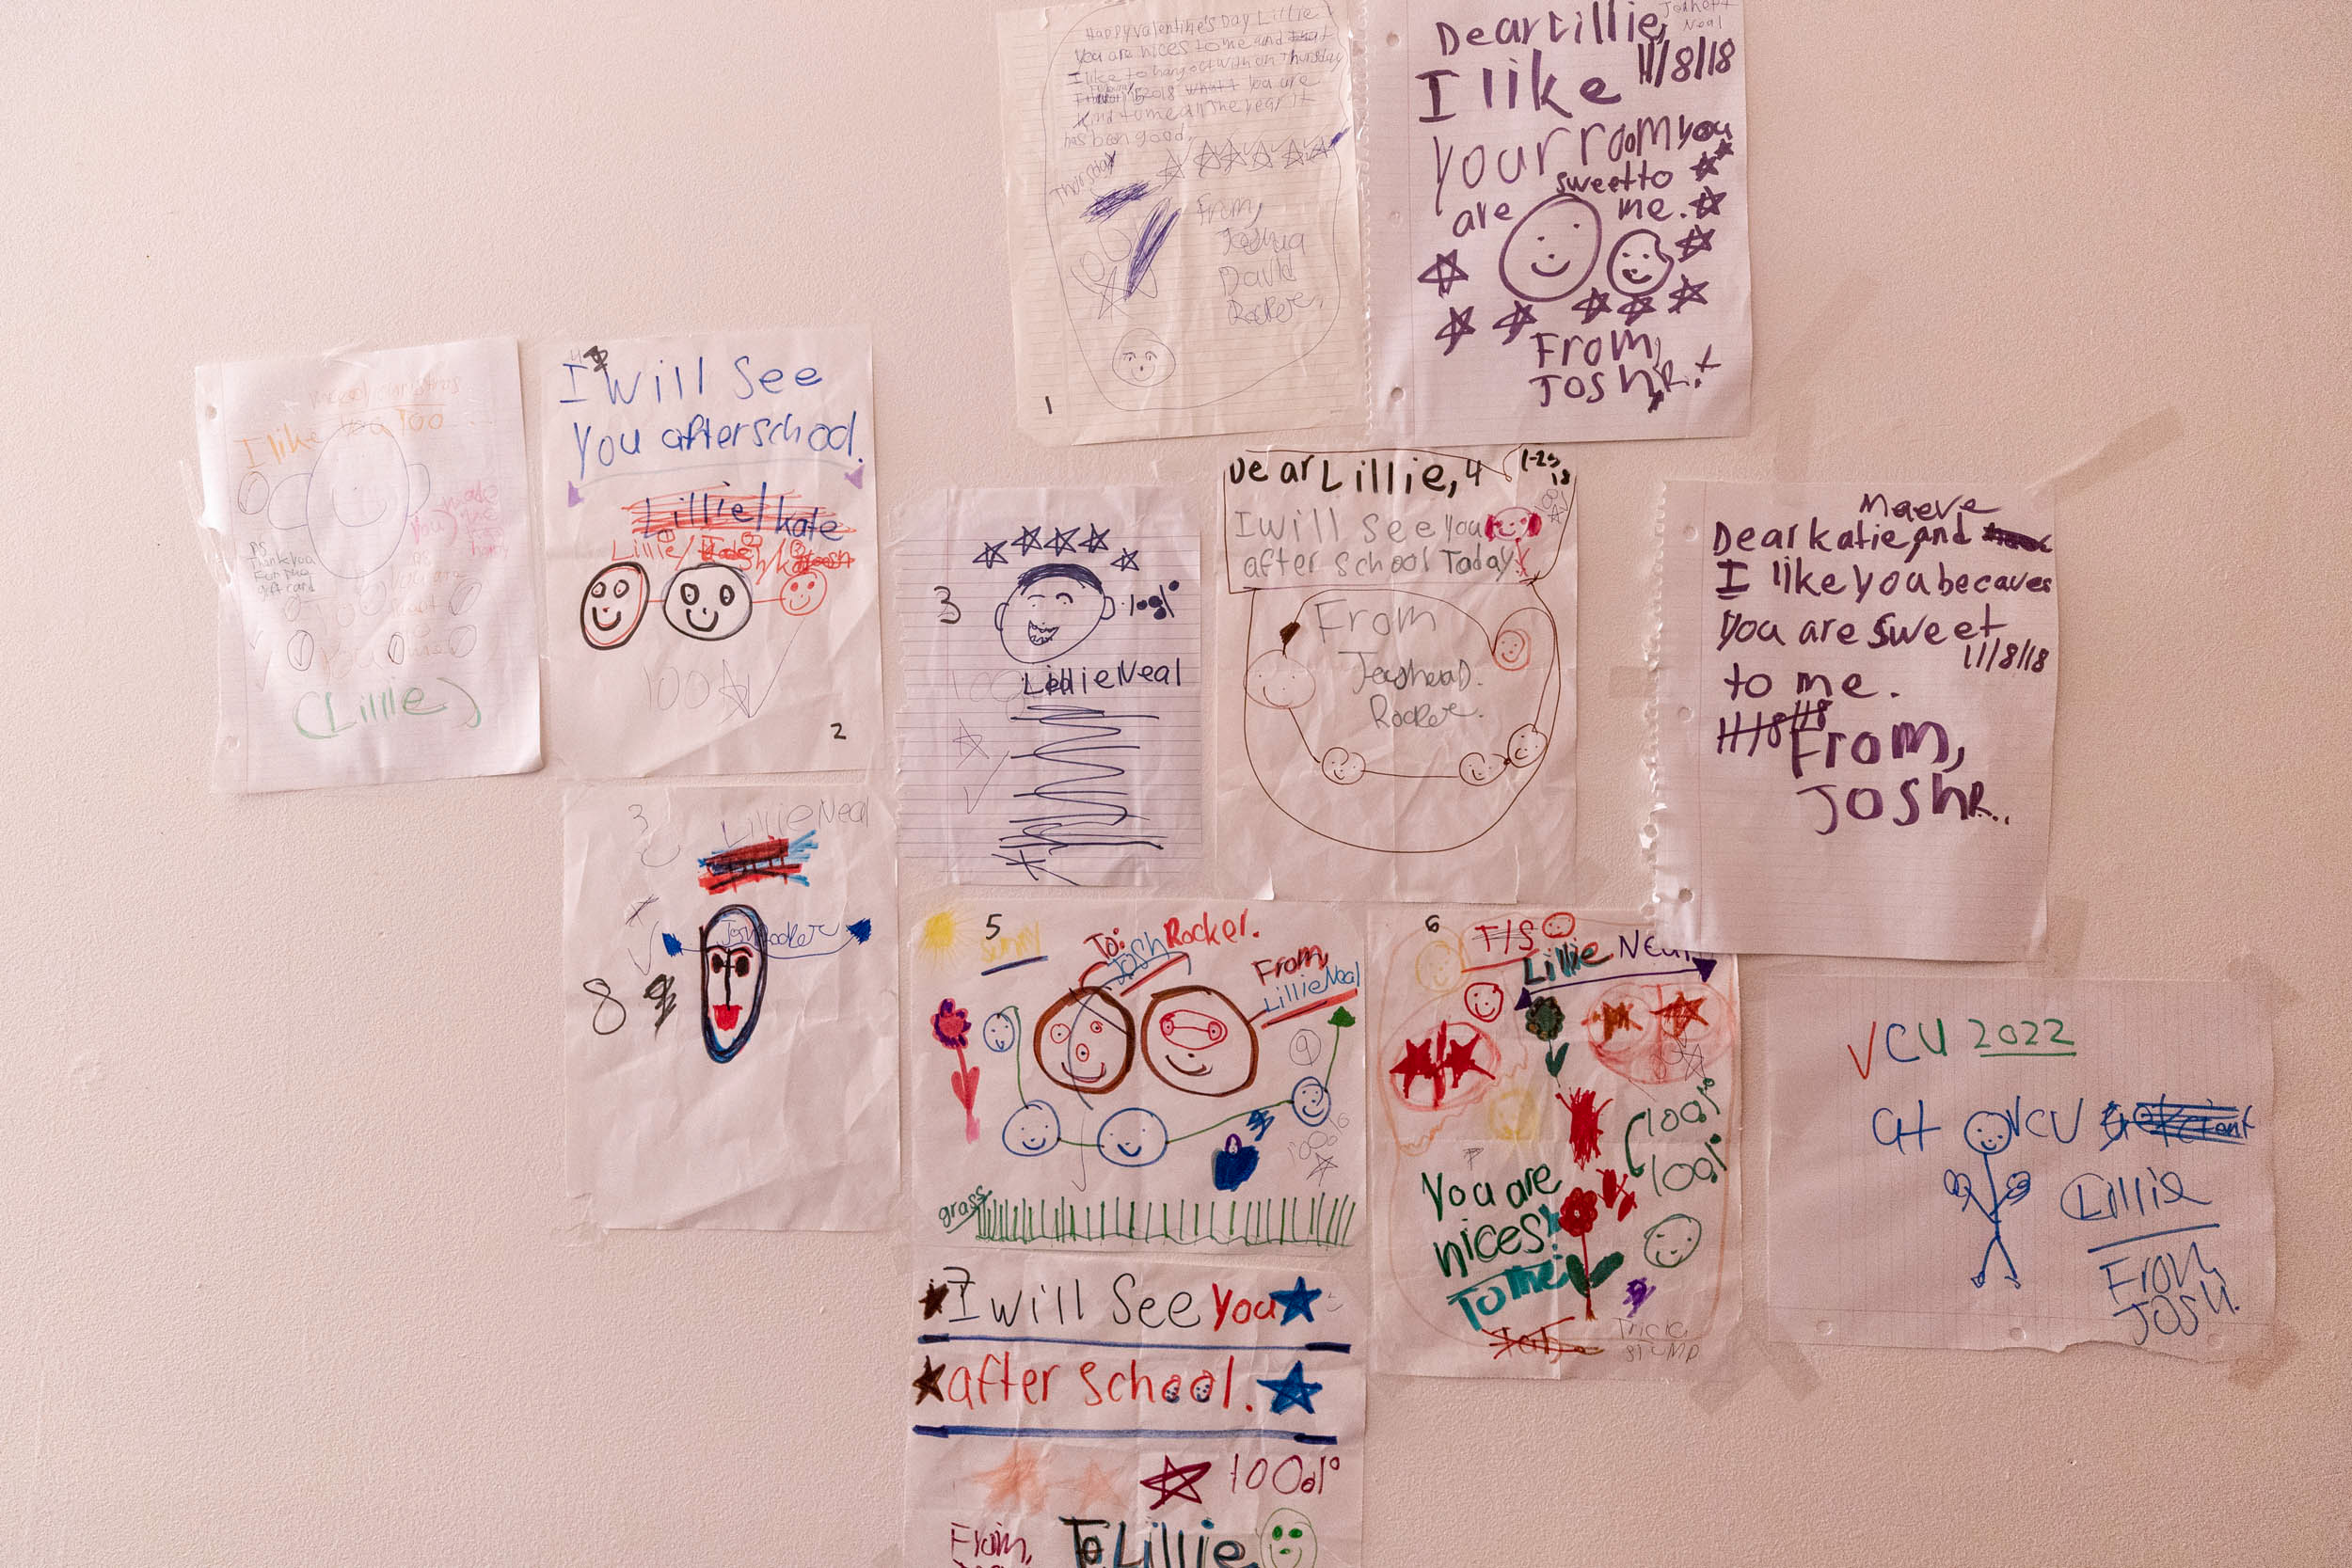 Rocker loves art and adores Neal. He has written her several fond notes, which Neal hangs on her bedroom walls.